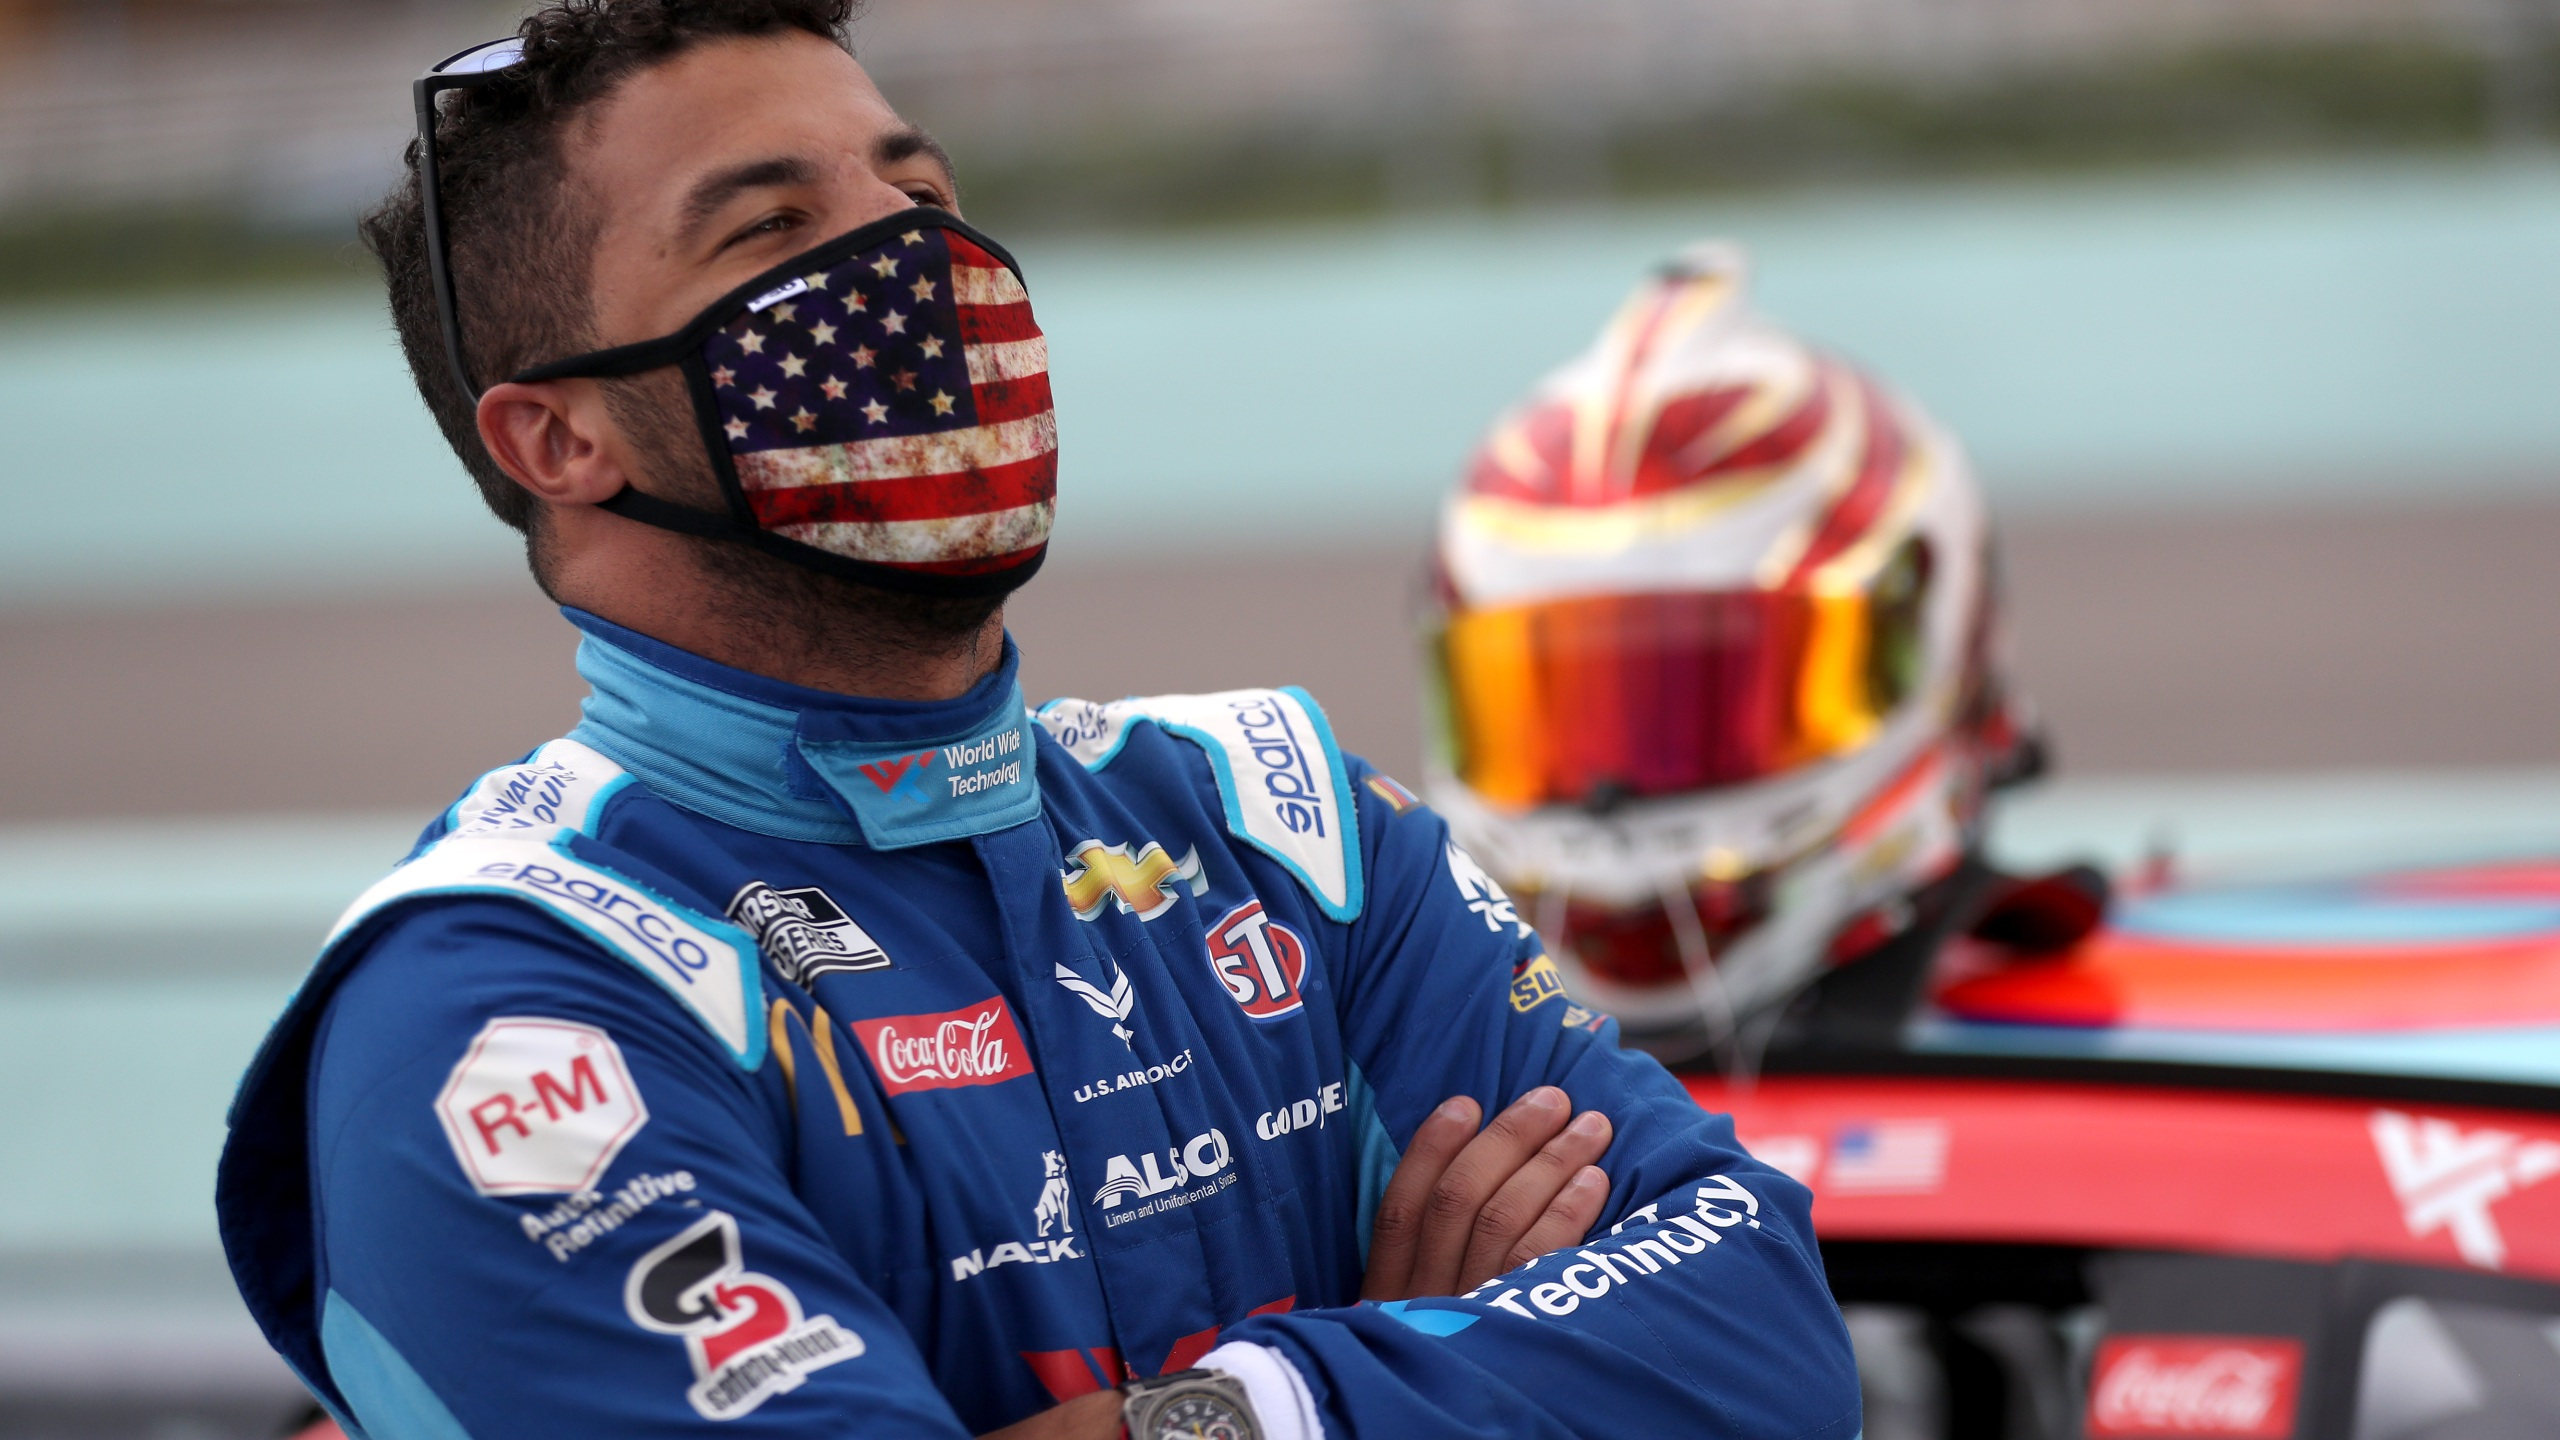 Bubba Wallace, driver of the #43 World Wide Technology Chevrolet, stands on the grid prior to the NASCAR Cup Series Dixie Vodka 400 at Homestead-Miami Speedway on June 14, 2020, in Homestead, Fla. (Chris Graythen/Getty Images)